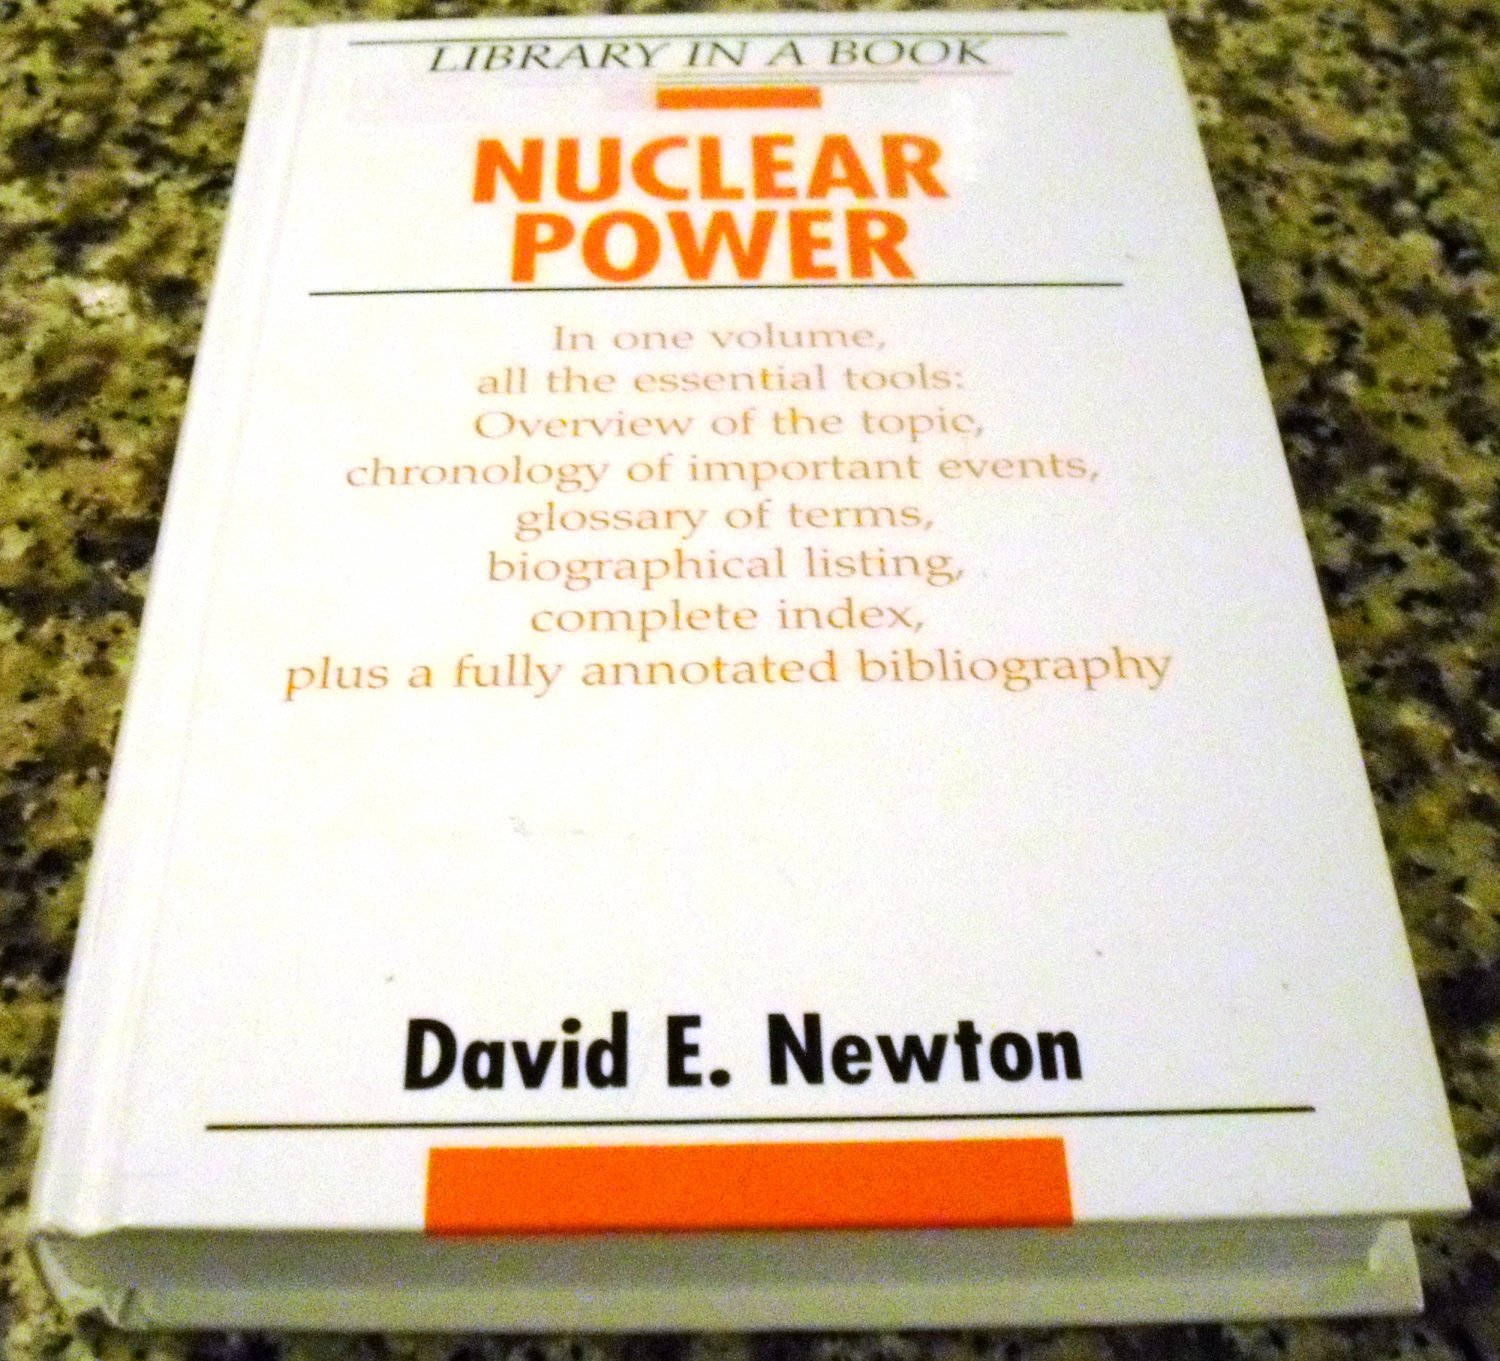 Nuclear Power (Library in a Book) by David E. Newton (Dec 2005)